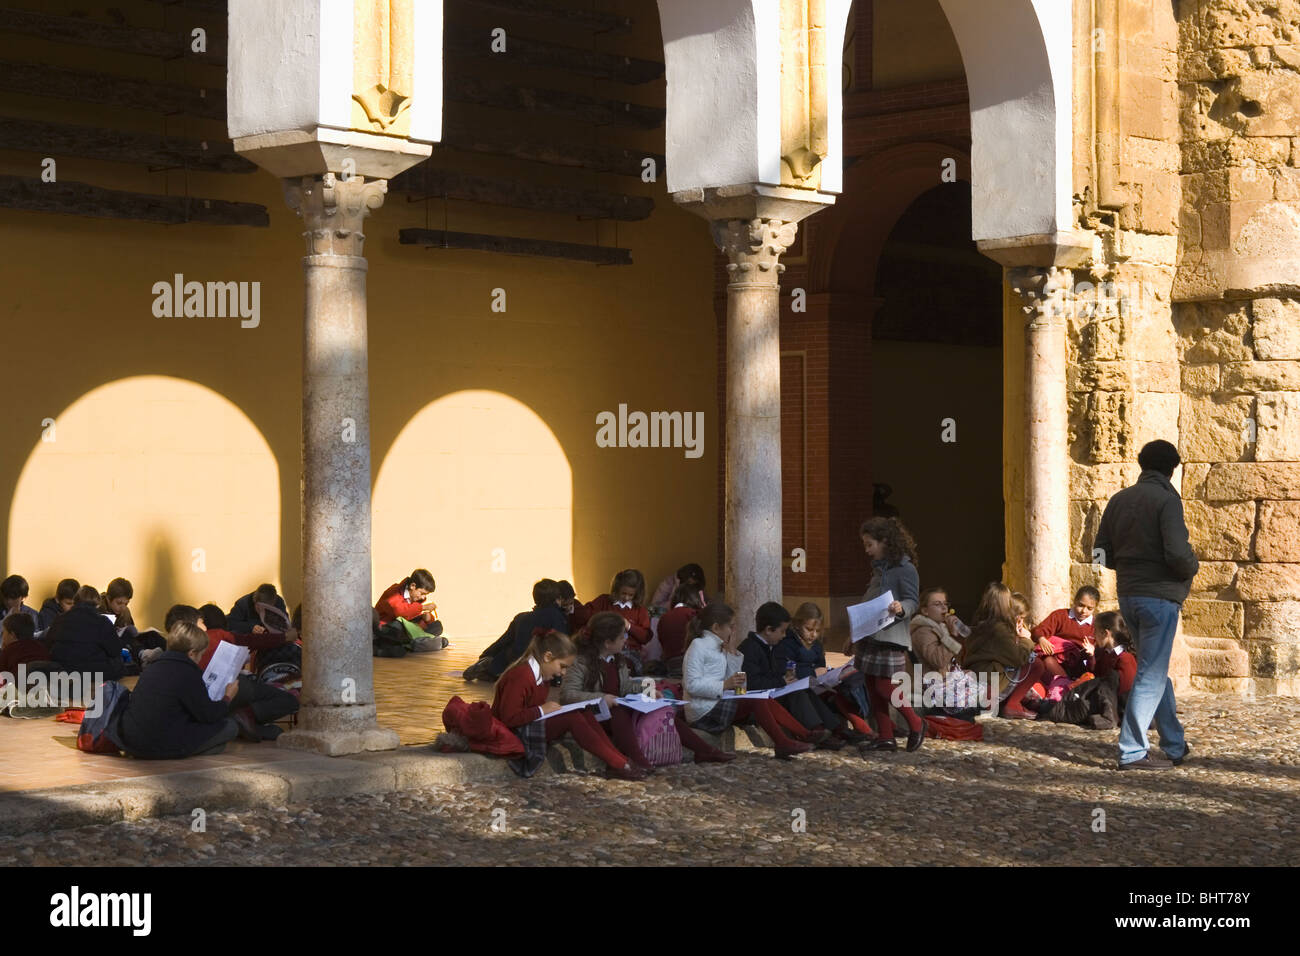 Spanish schoolchildren in the patio of The Great Mosque, Cordoba, Spain studying its history. - Stock Image